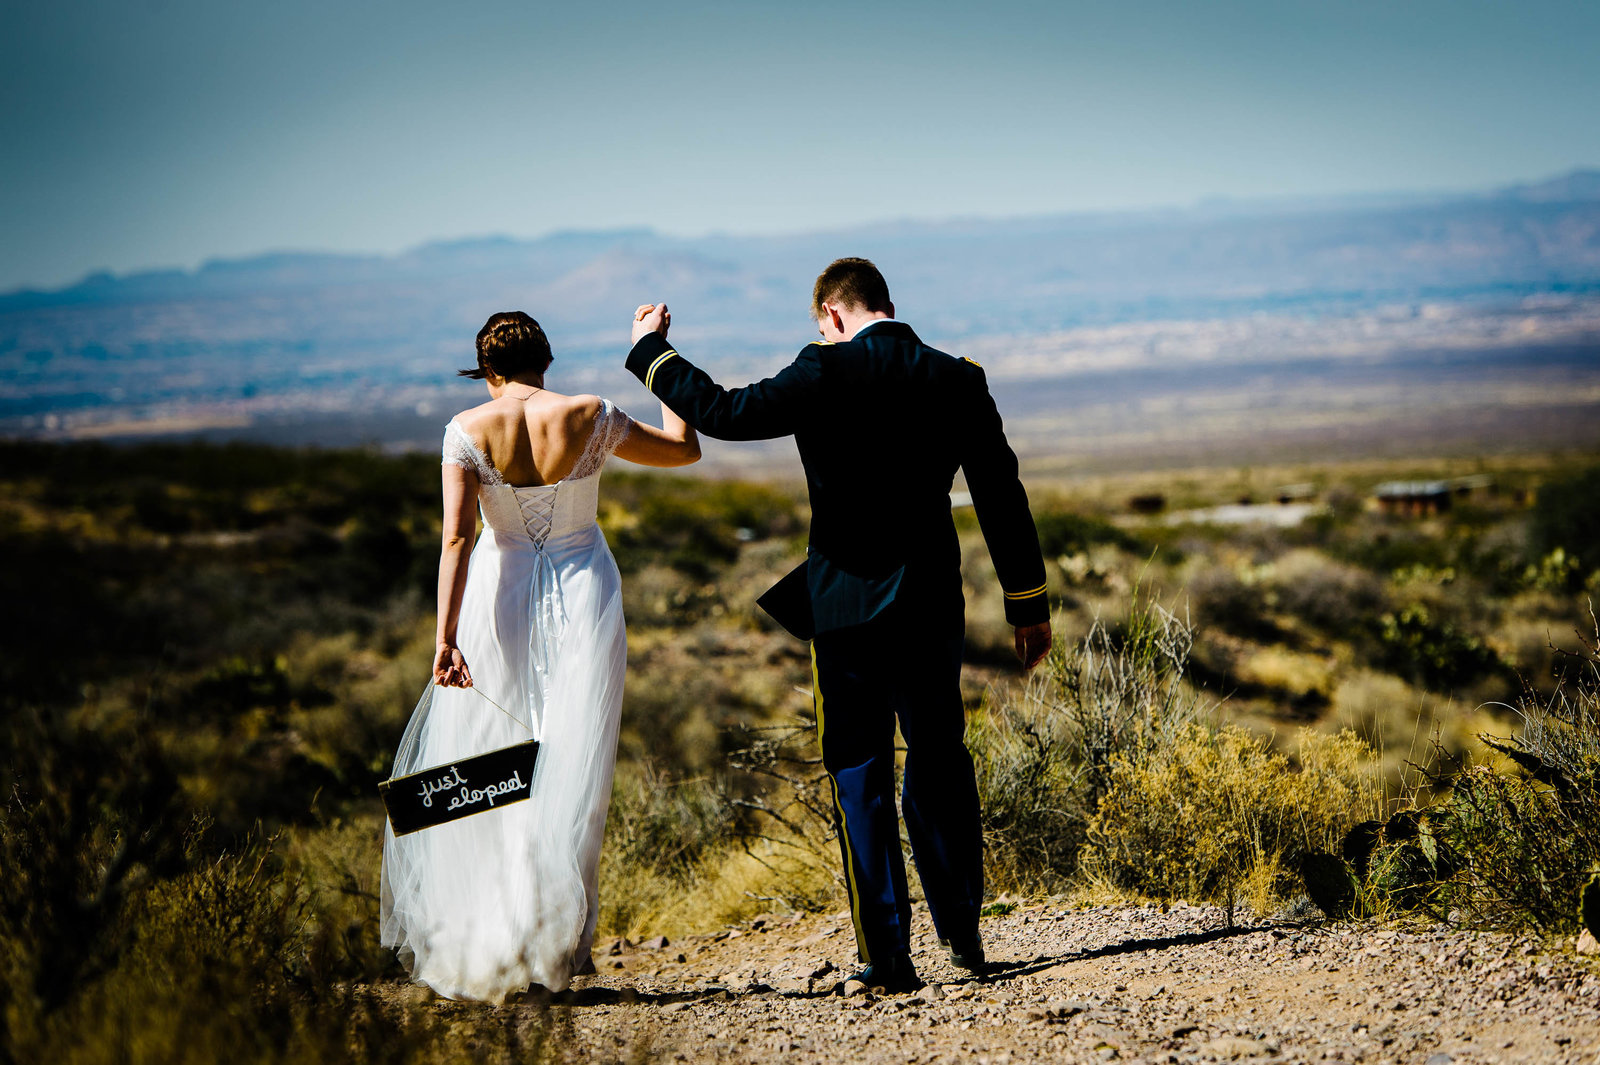 292-El-paso-wedding-photographer-El Paso Wedding Photographer_P51